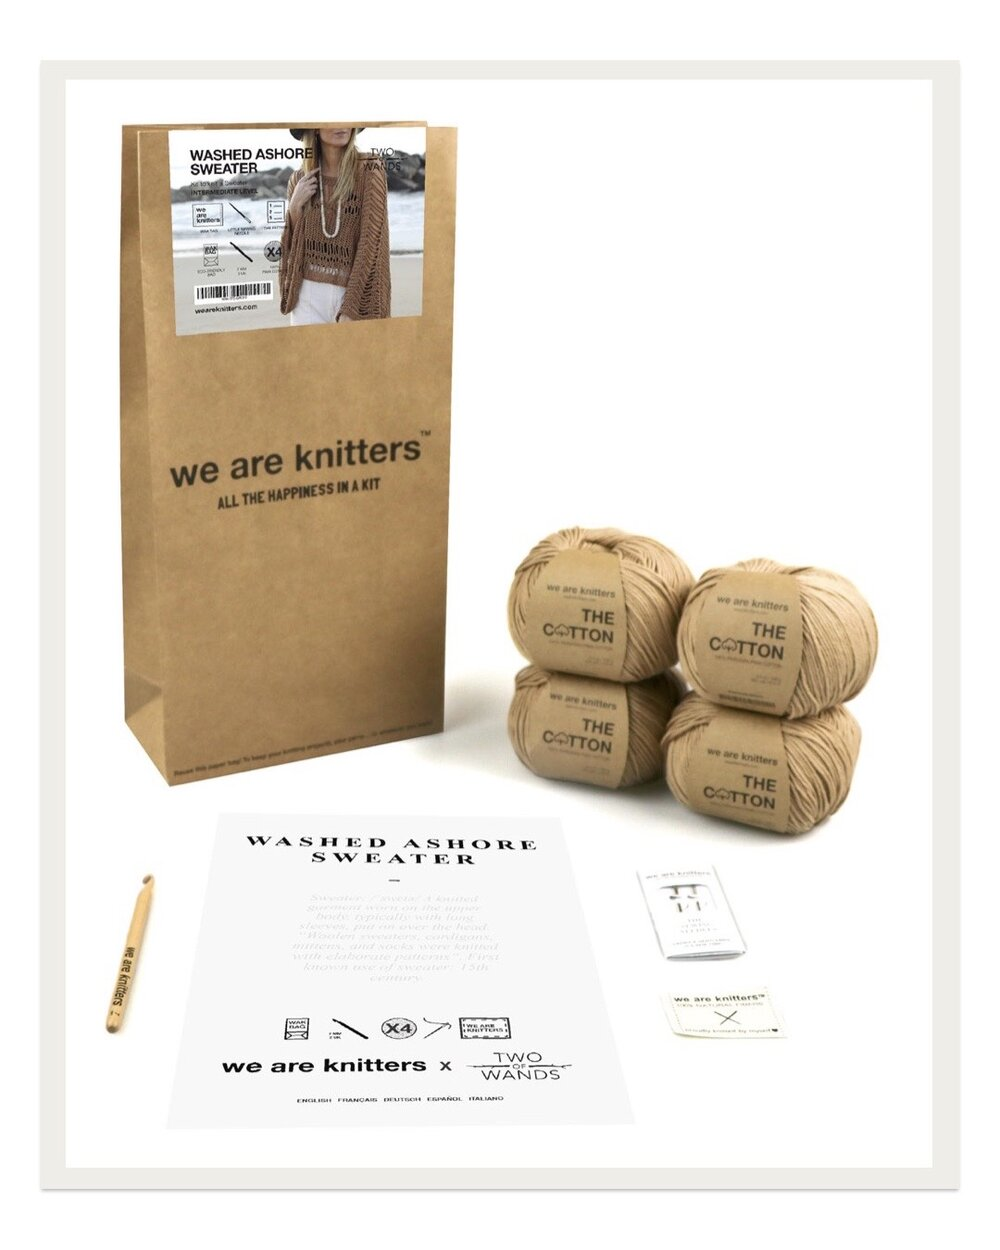 If you're looking for a truly special yarn kit, We Are Knitters is a top choice. The beautiful packaging and thoughtful details make this a lovely gift with high end yarn and modern designs.